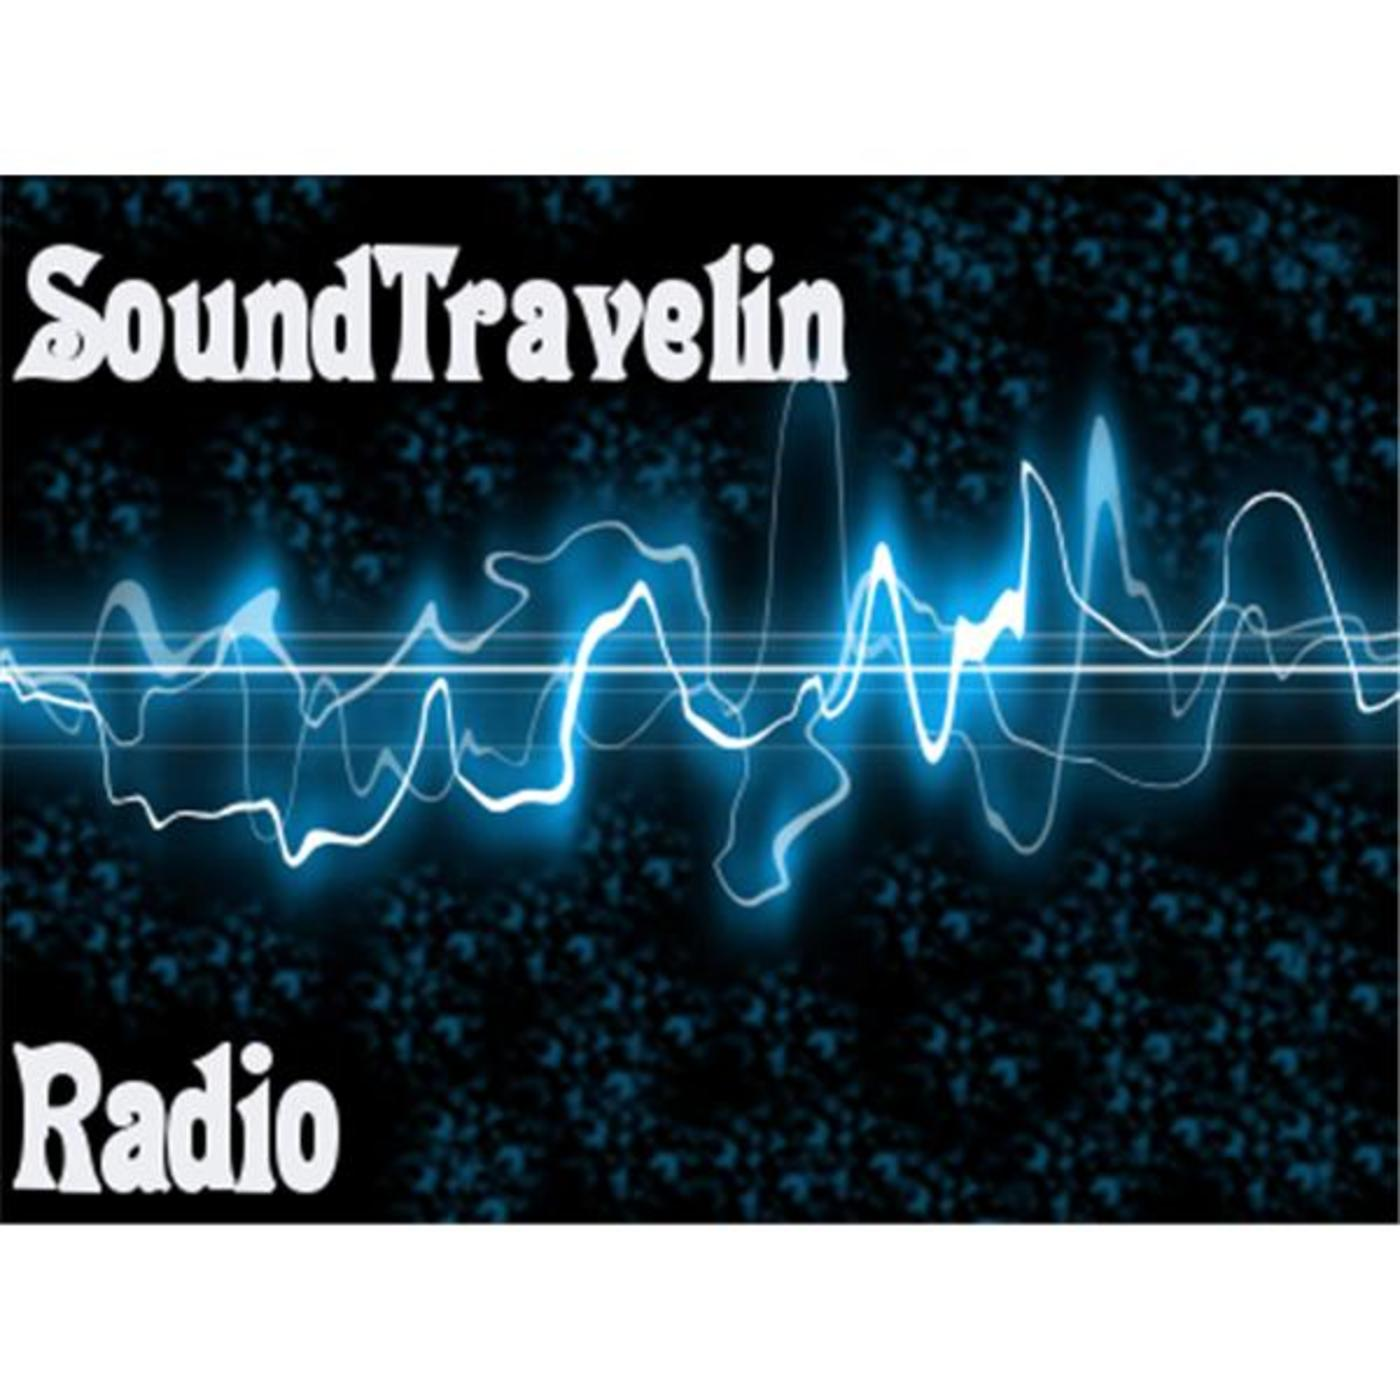 SoundTravelin Radio